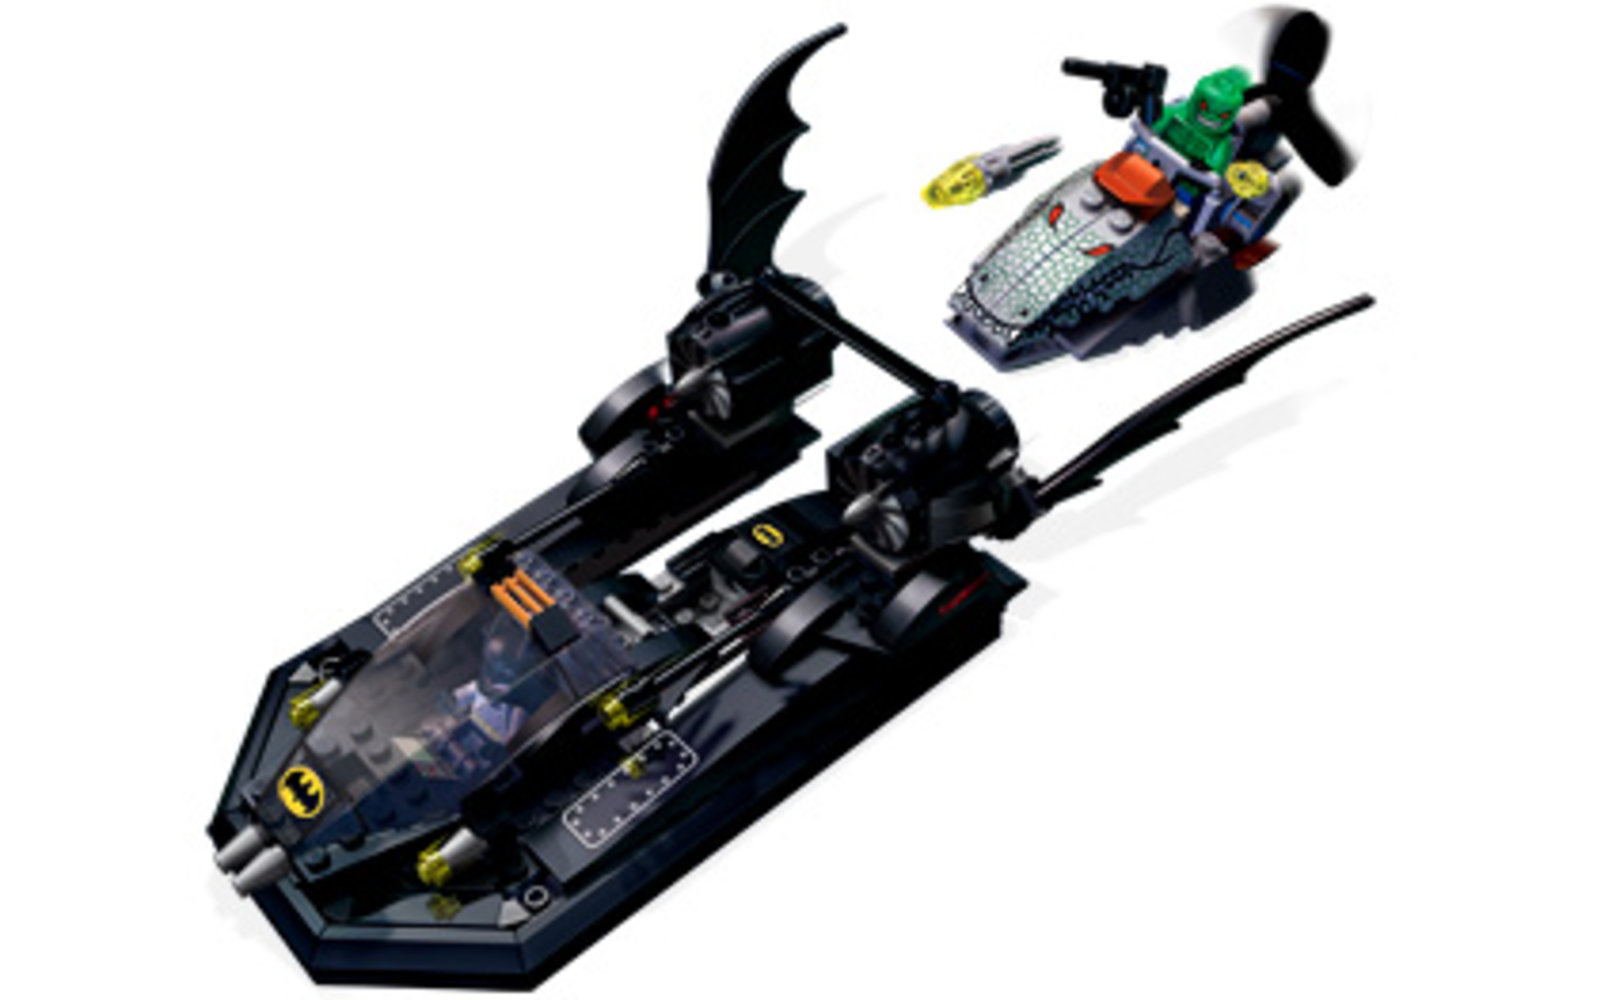 The Batboat: Hunt for Killer Croc